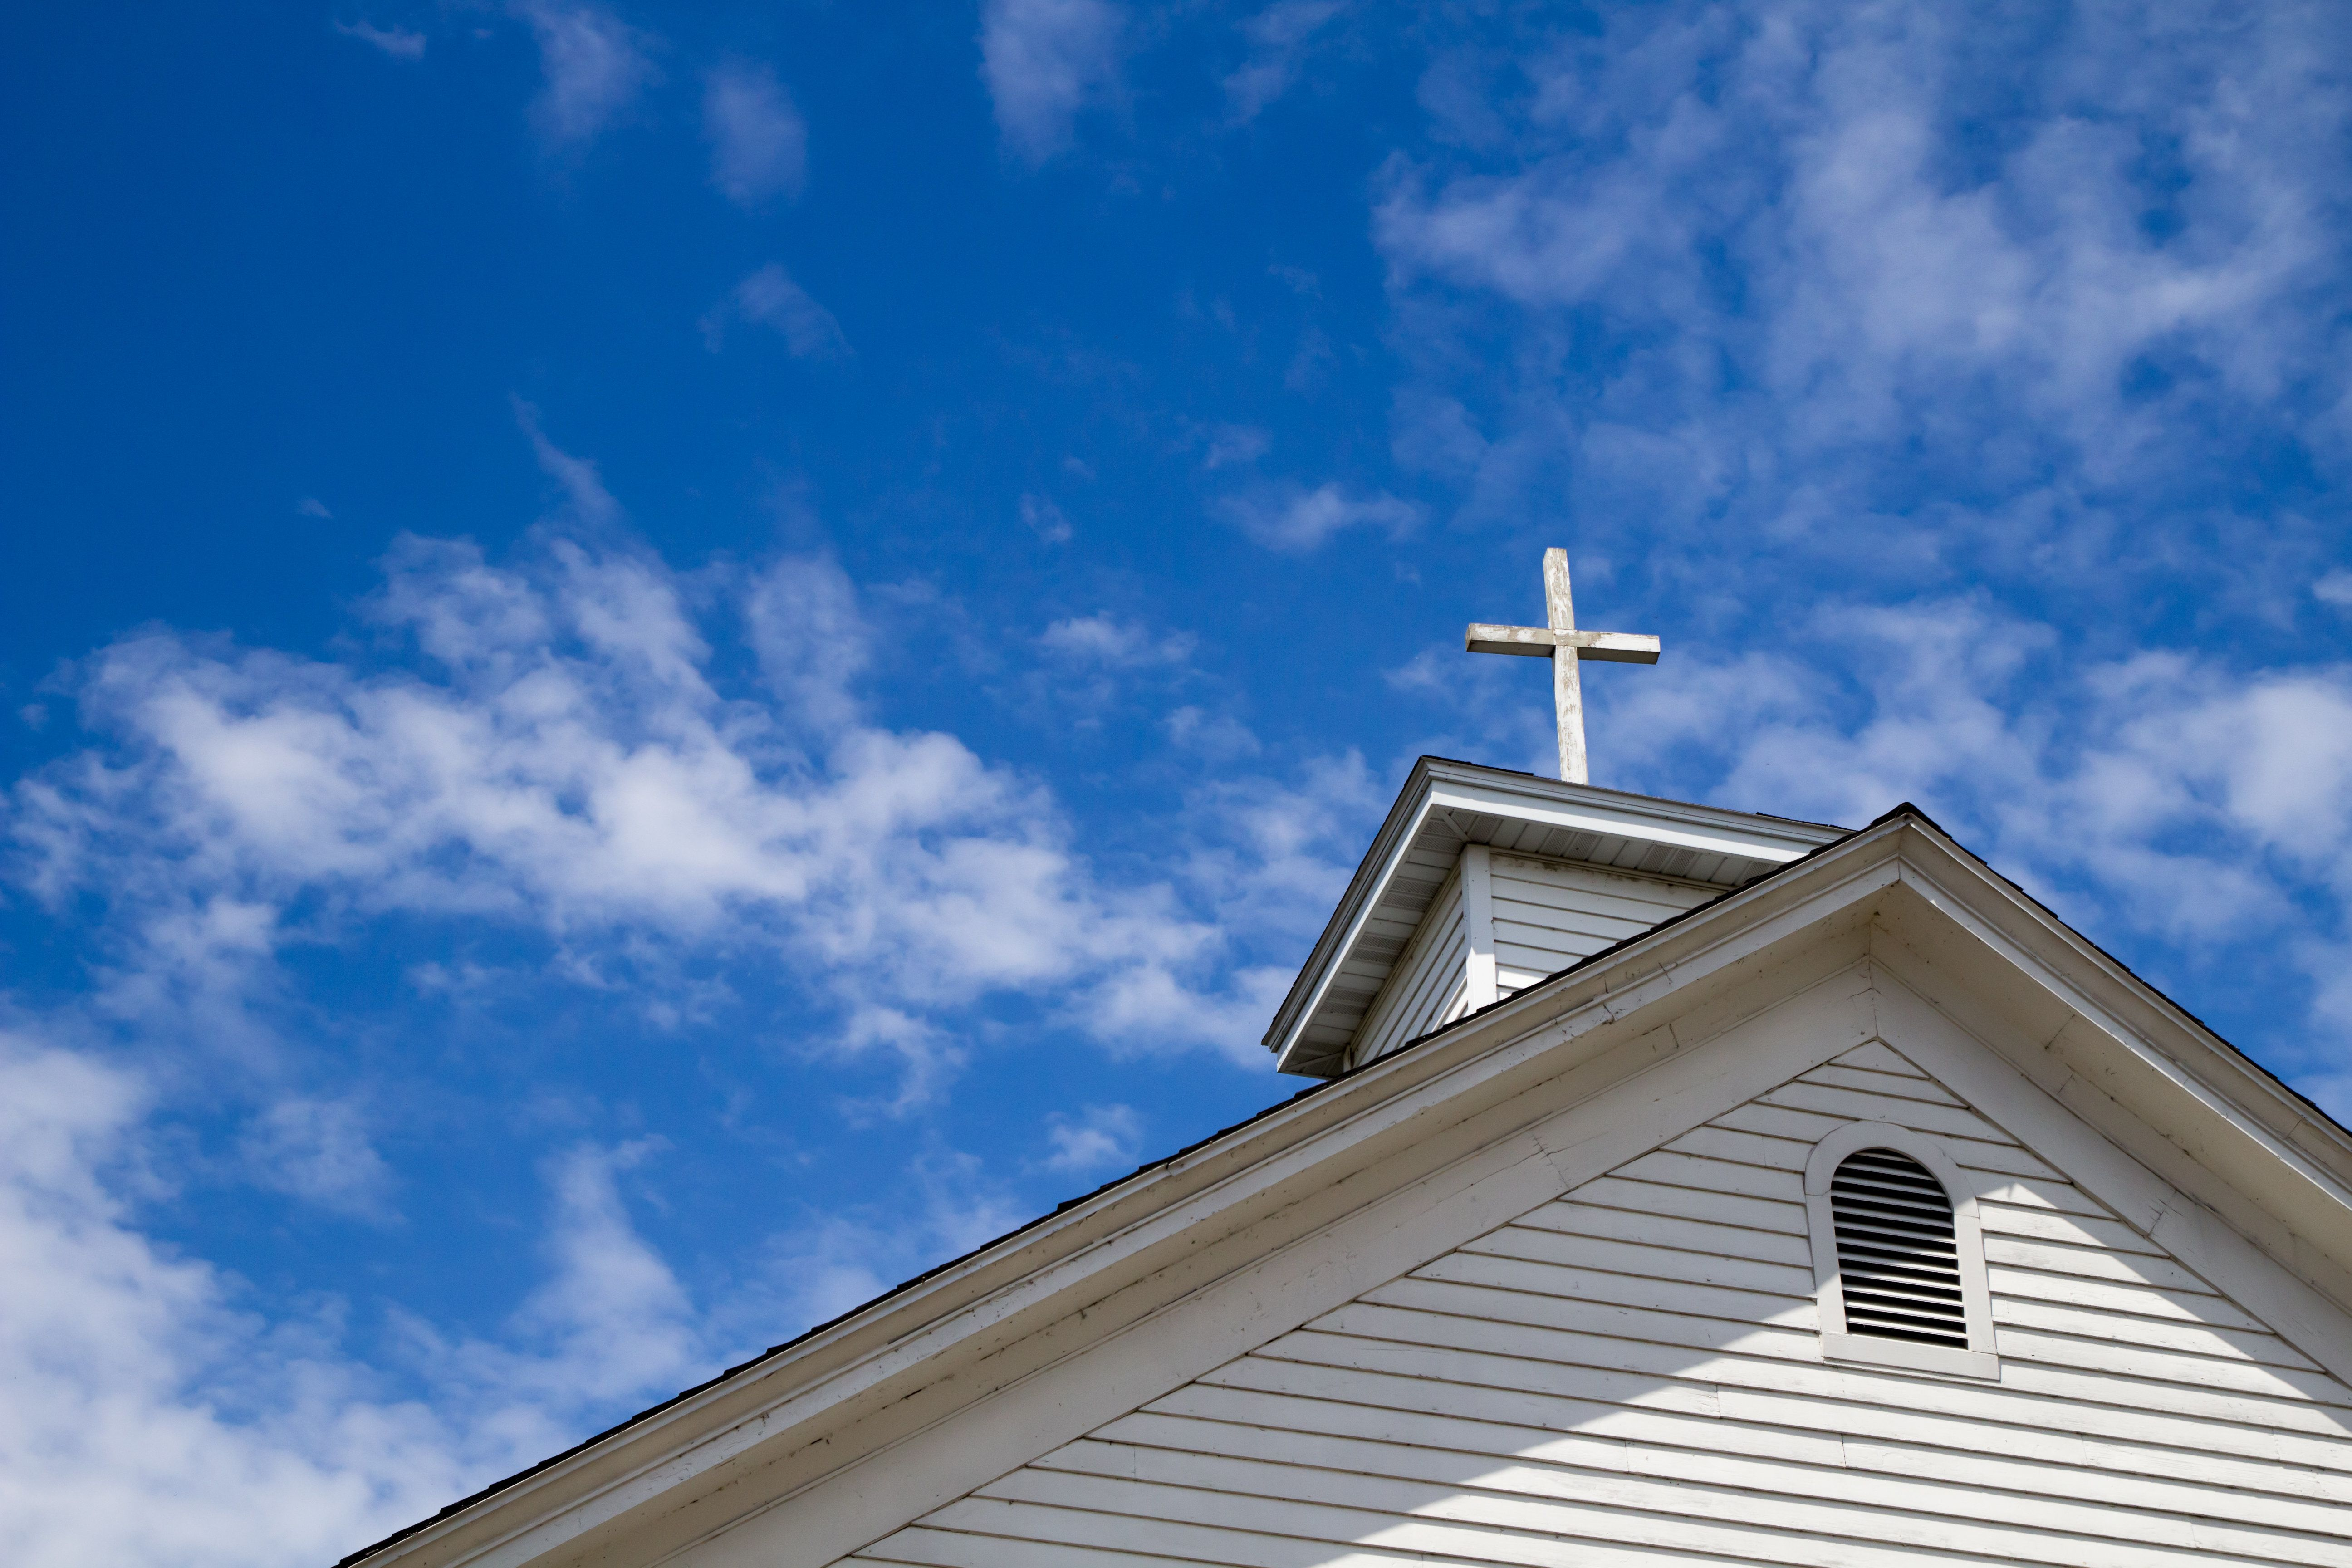 Wooden cross on a simple steeple set against a sunny summer blue sky.